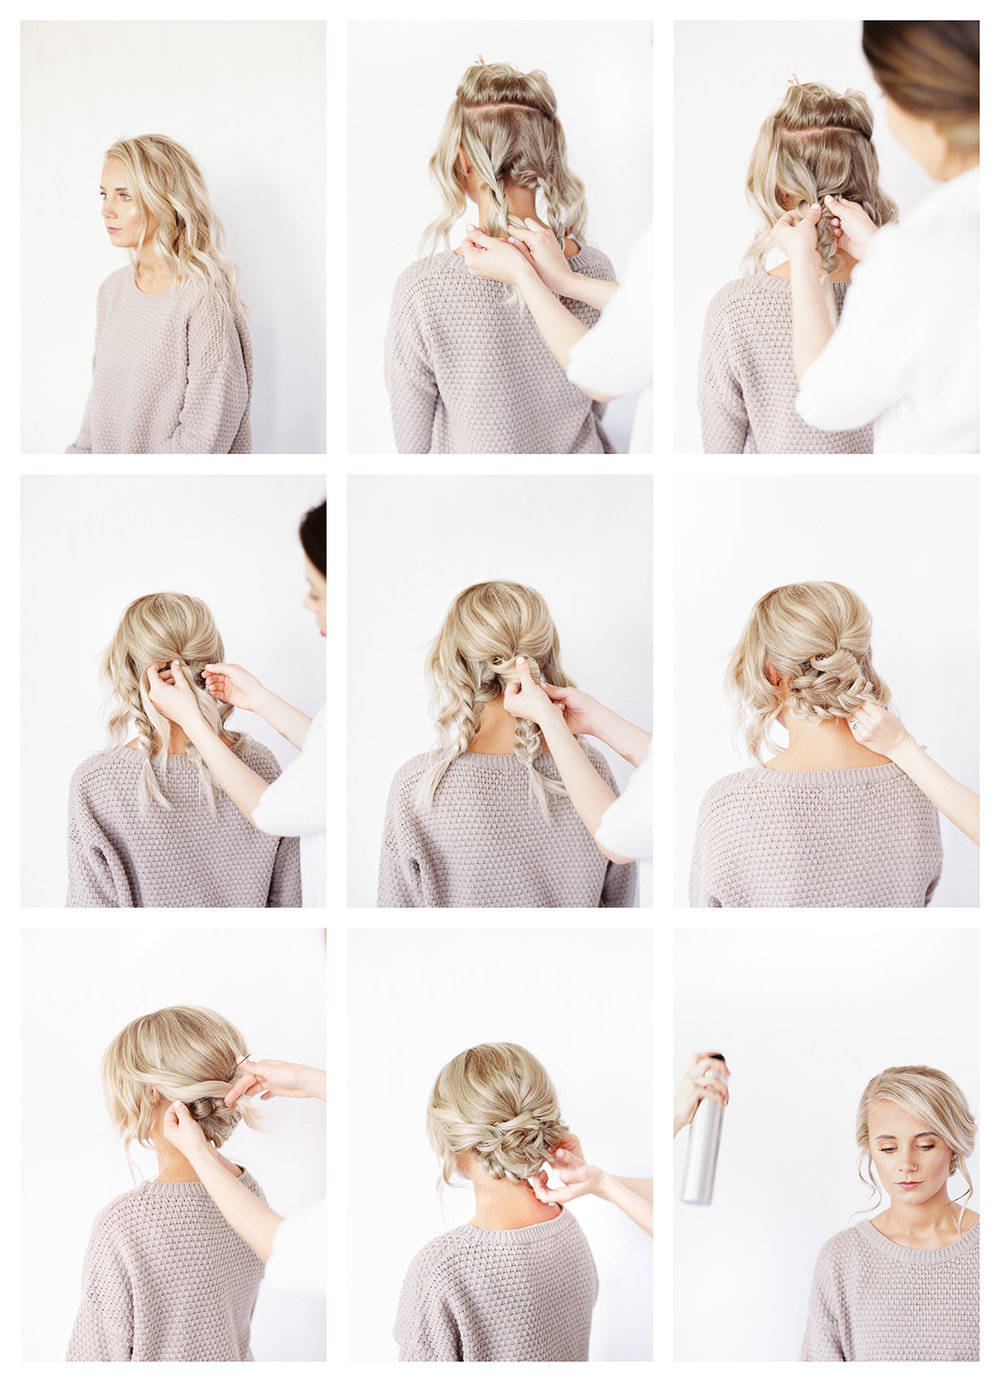 romantic braided updo wedding bridal hairstyle tutorial DIY // braid elegant hair www.hannahforsberg.com-atlanta-wedding-photographer-hair-makeup-tutorial-diy-romantic-updo-collage.jpg